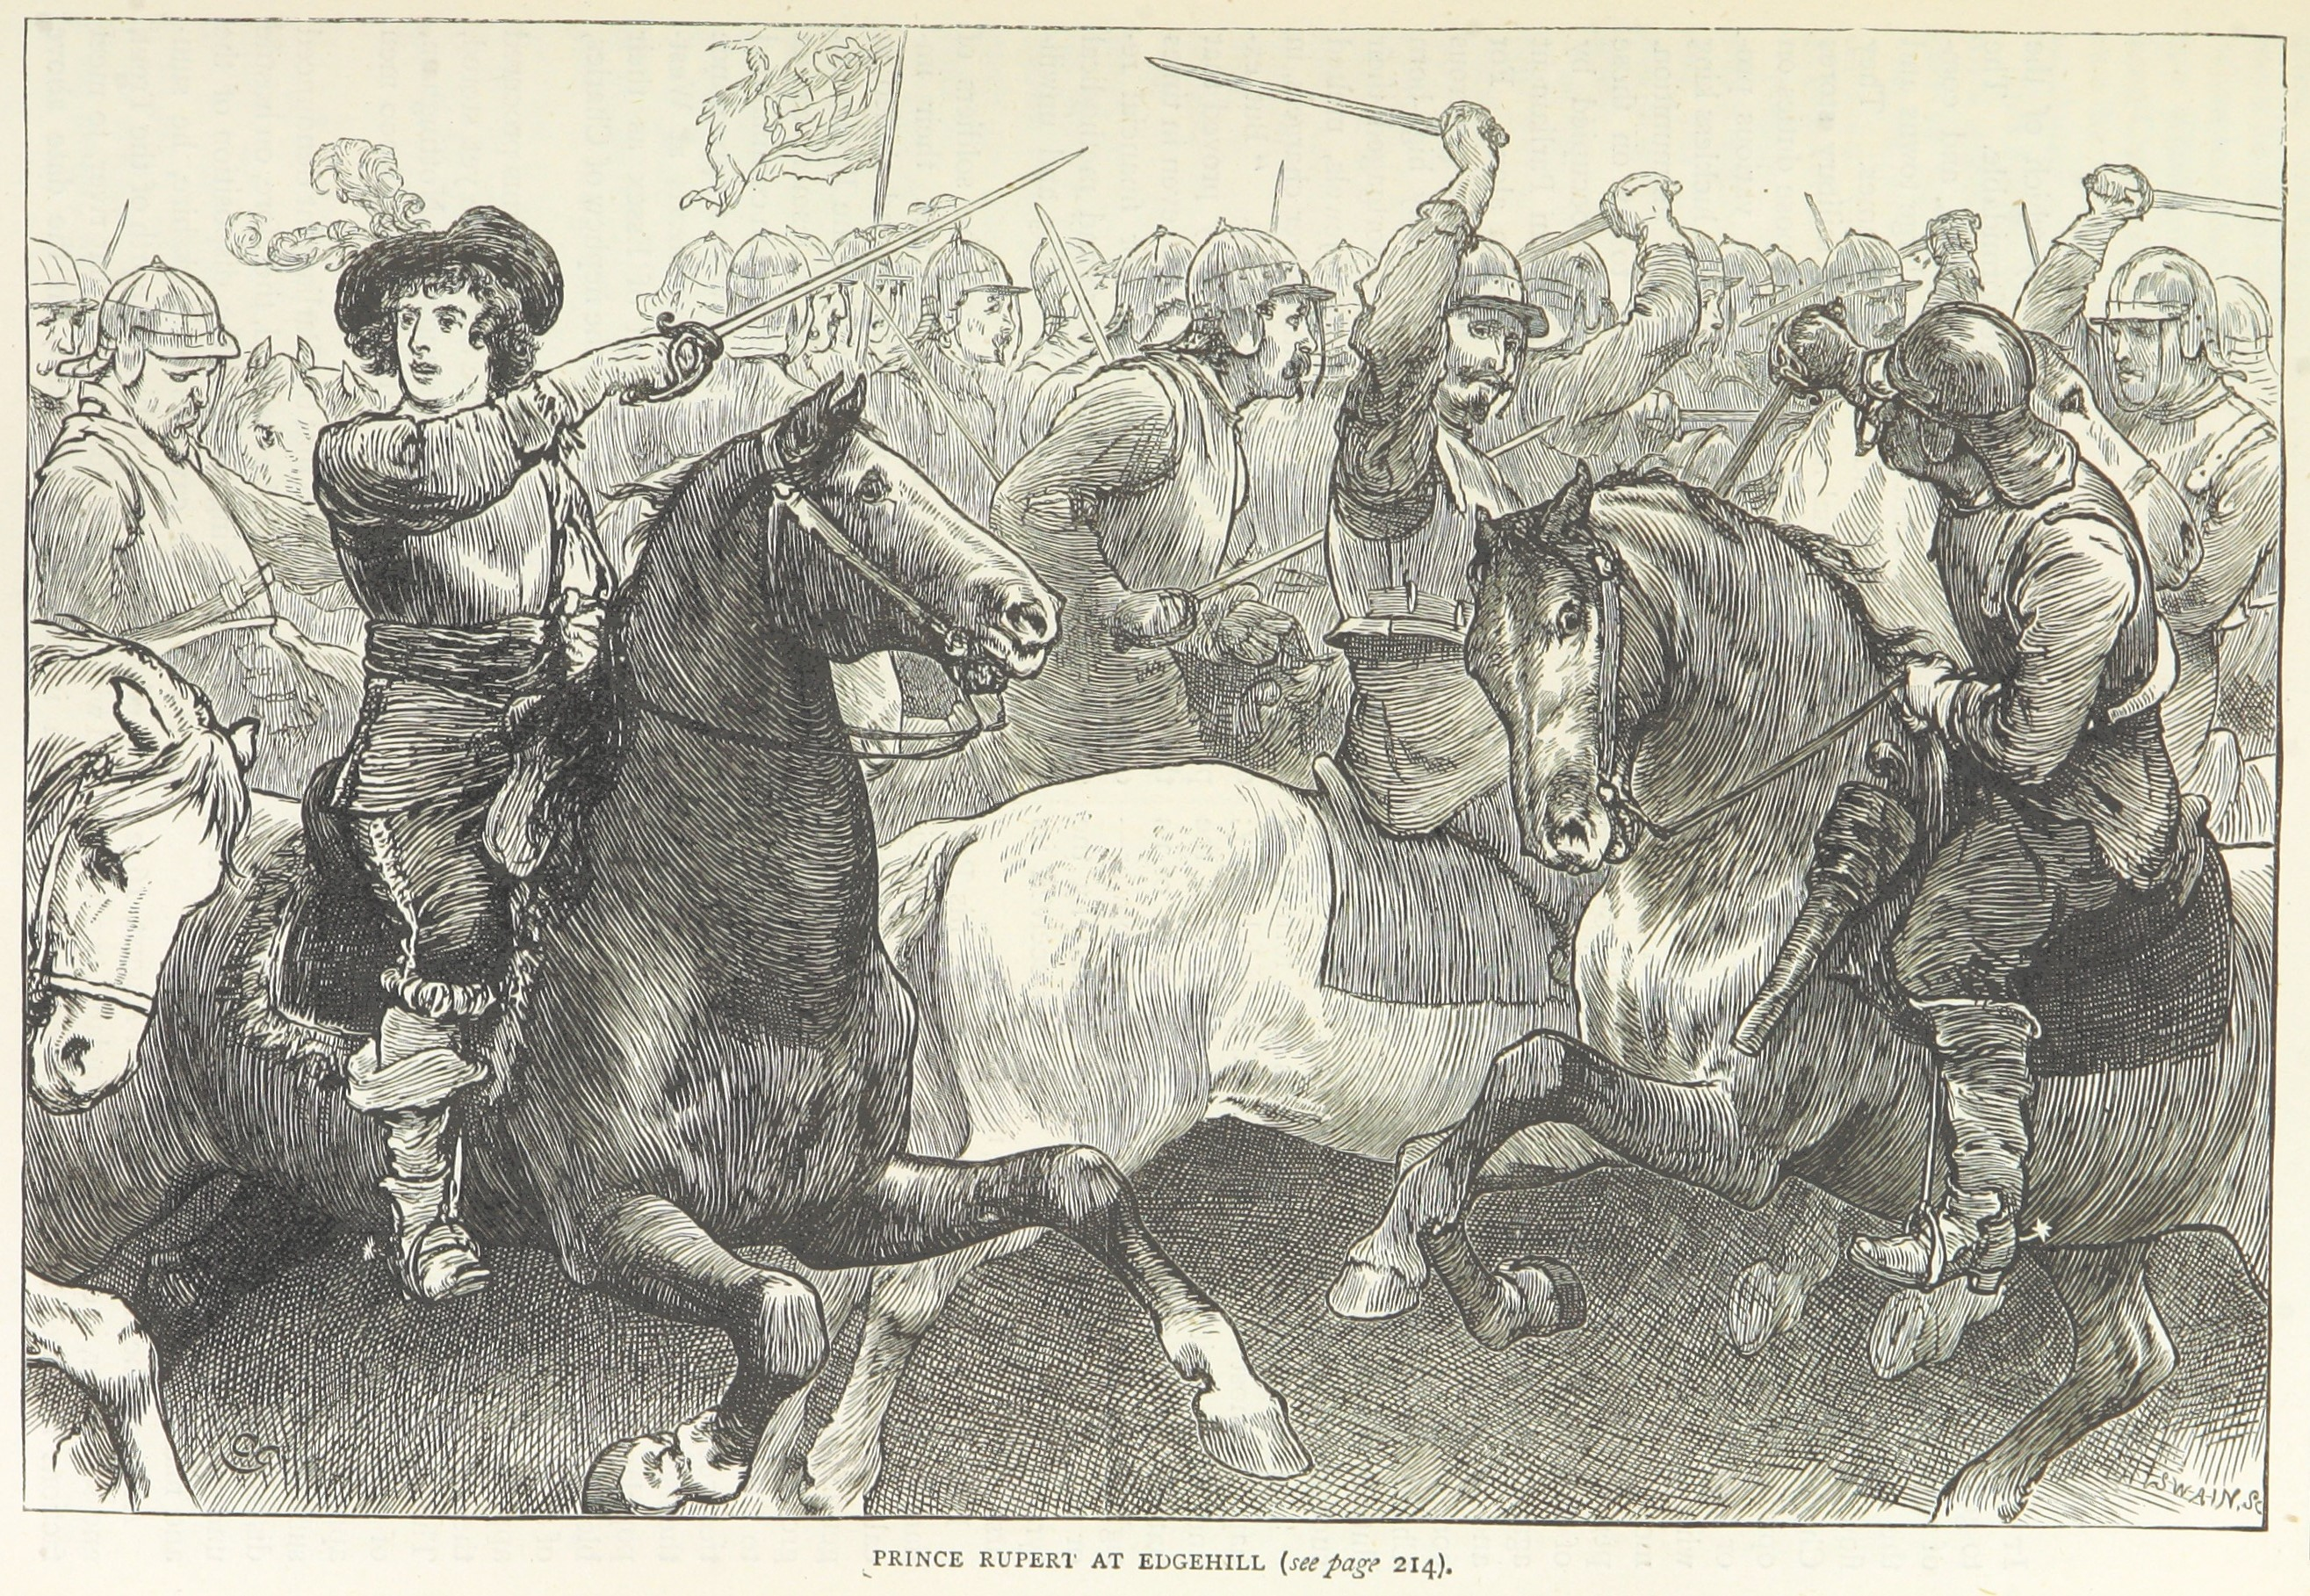 An image of Prince Rupert fighting at the Battle of Edgehill.